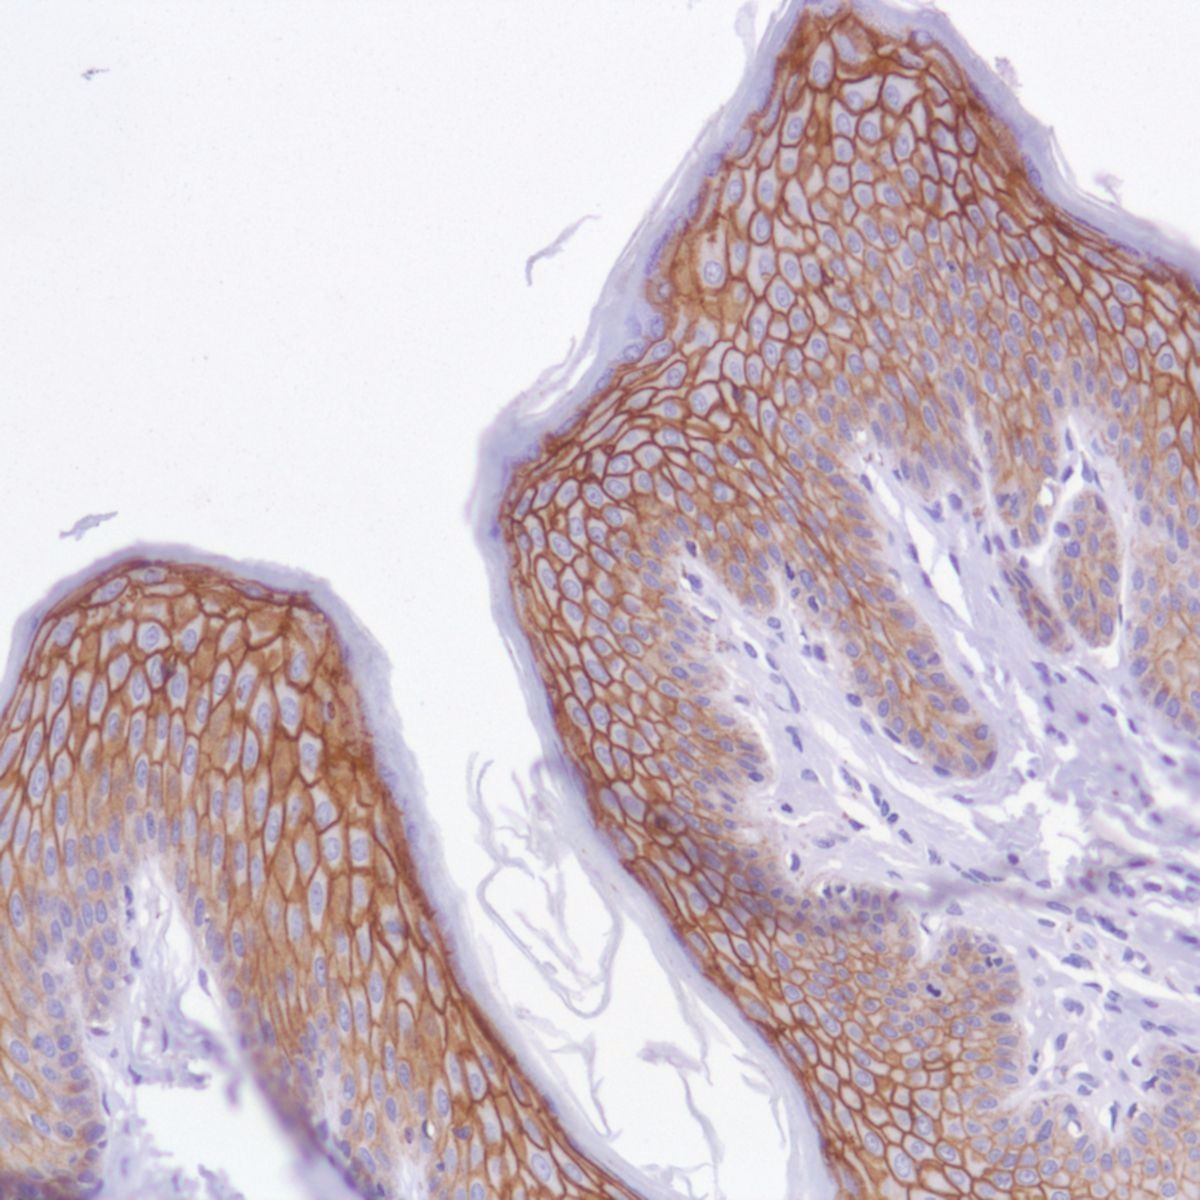 Human Skin stained with anti-TROP-2 antibody